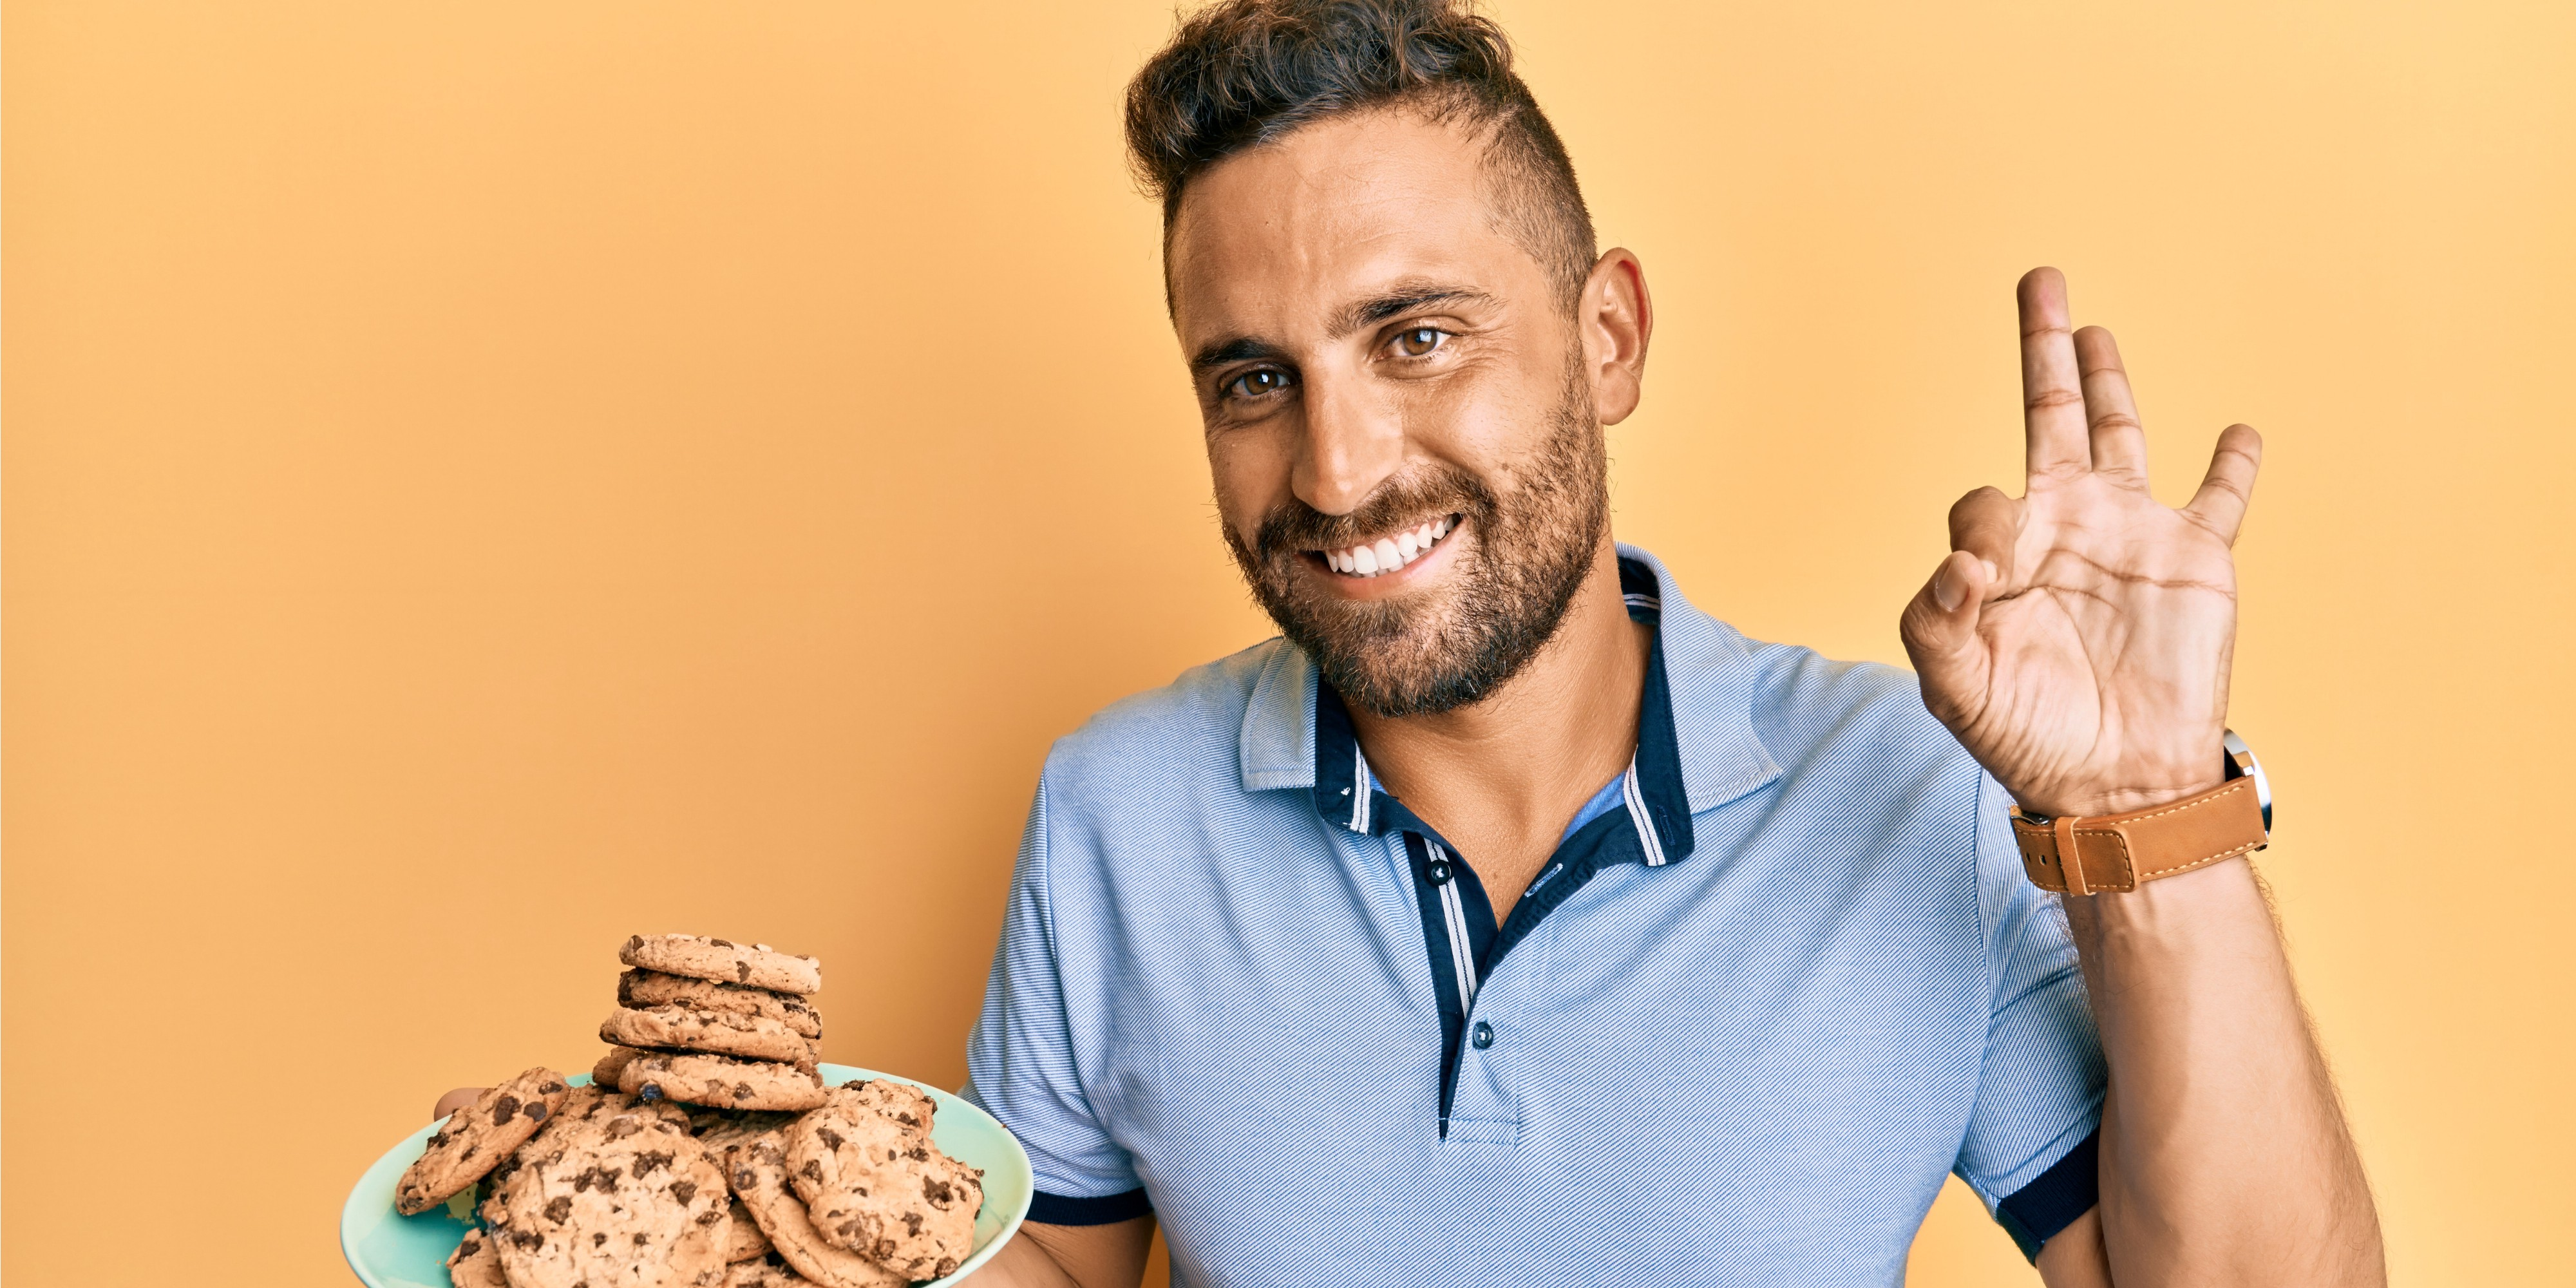 A man holding a plate of chocolate chip cookies. Courtesy of shuterstock.com / Krakenimages.com